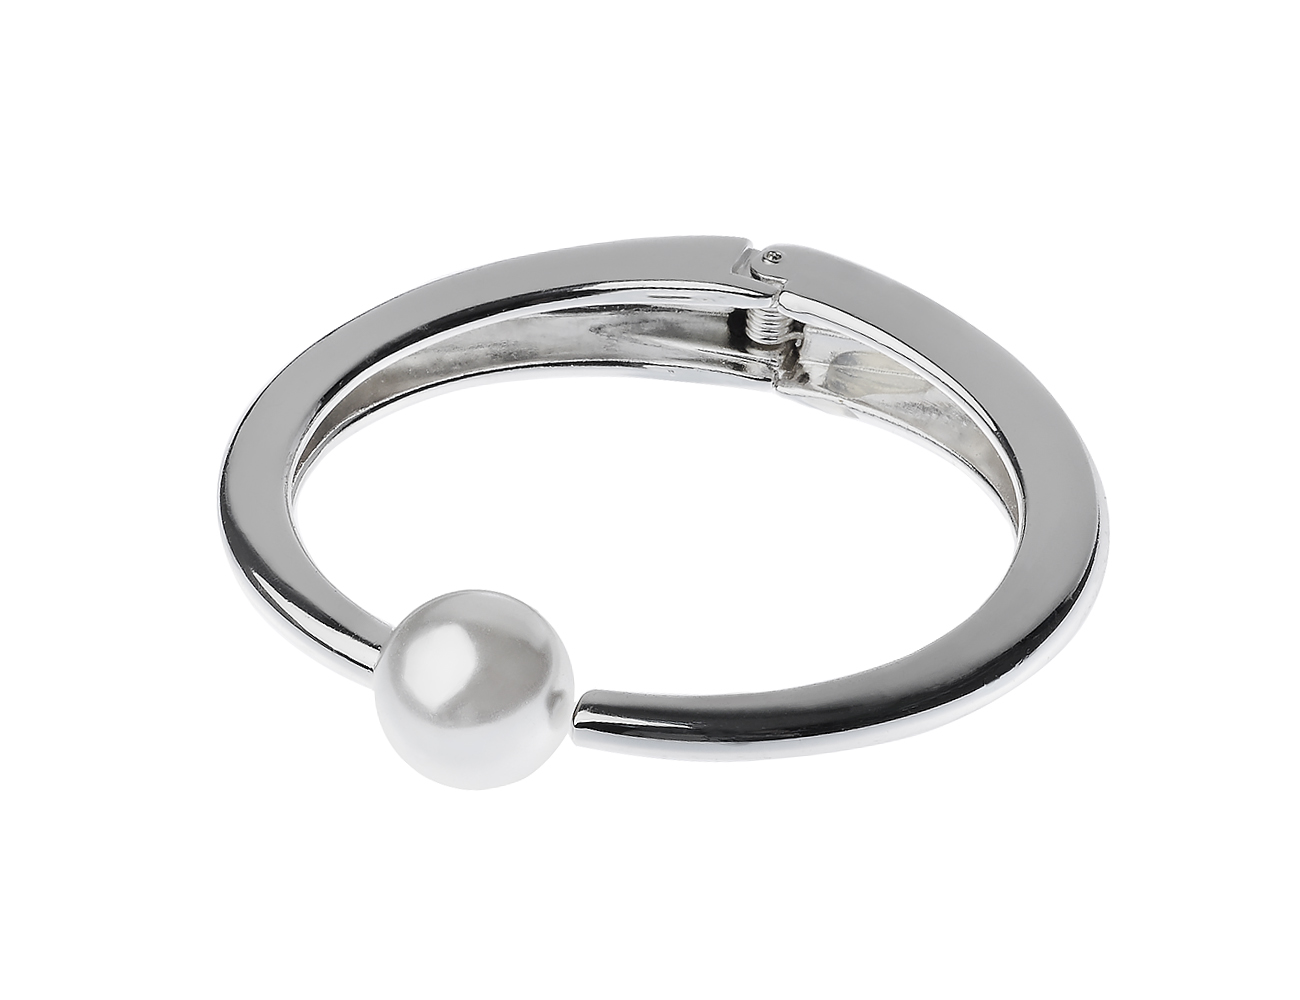 Shinny Silver With Pearl Center Cuff